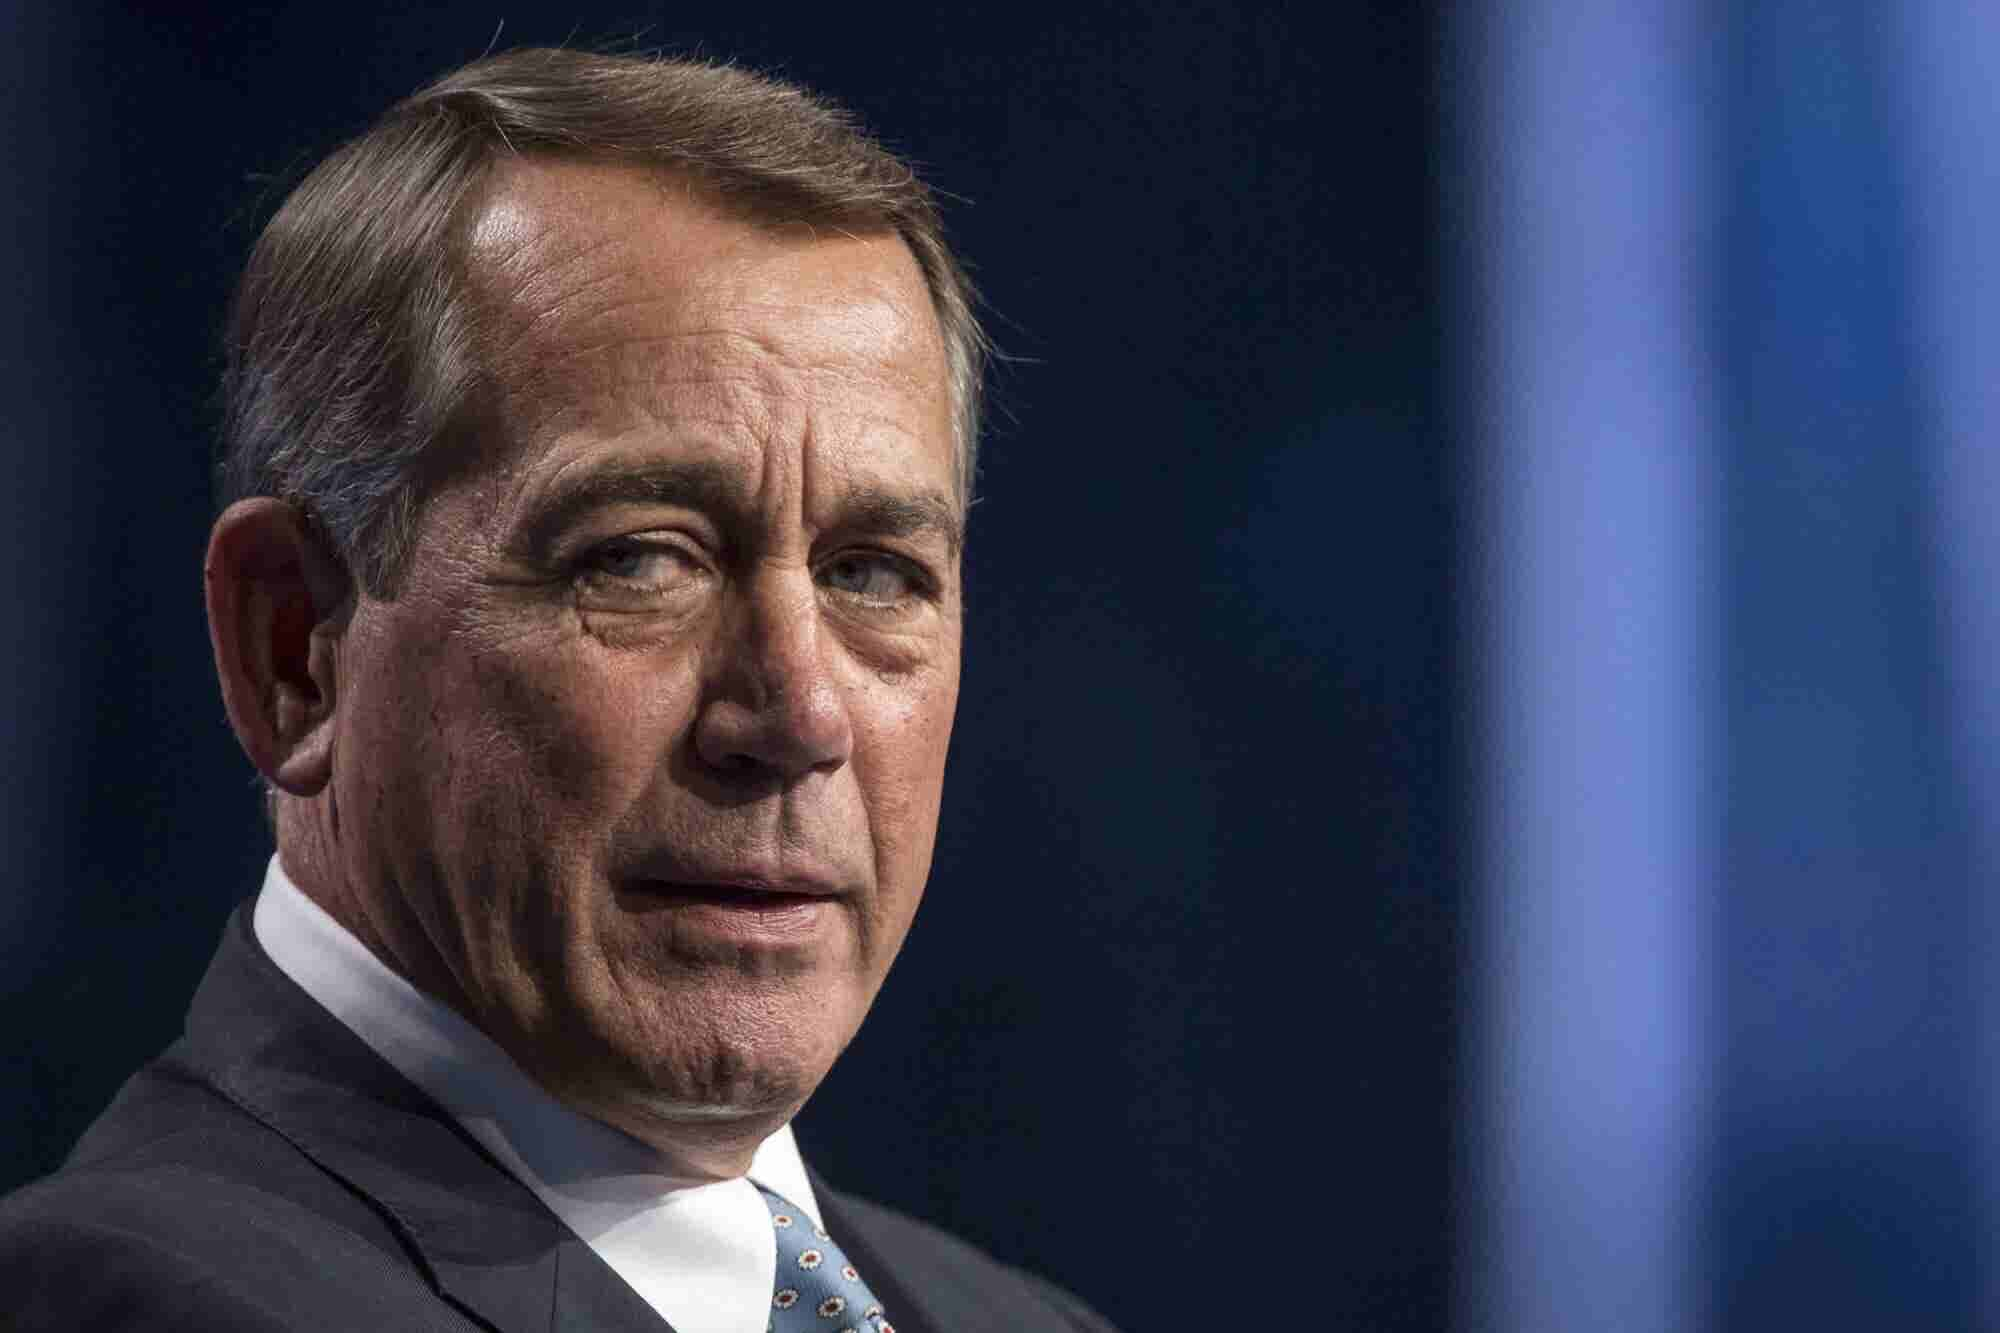 The Cannabis Industry Is Embracing John Boehner as Reluctantly as He I...